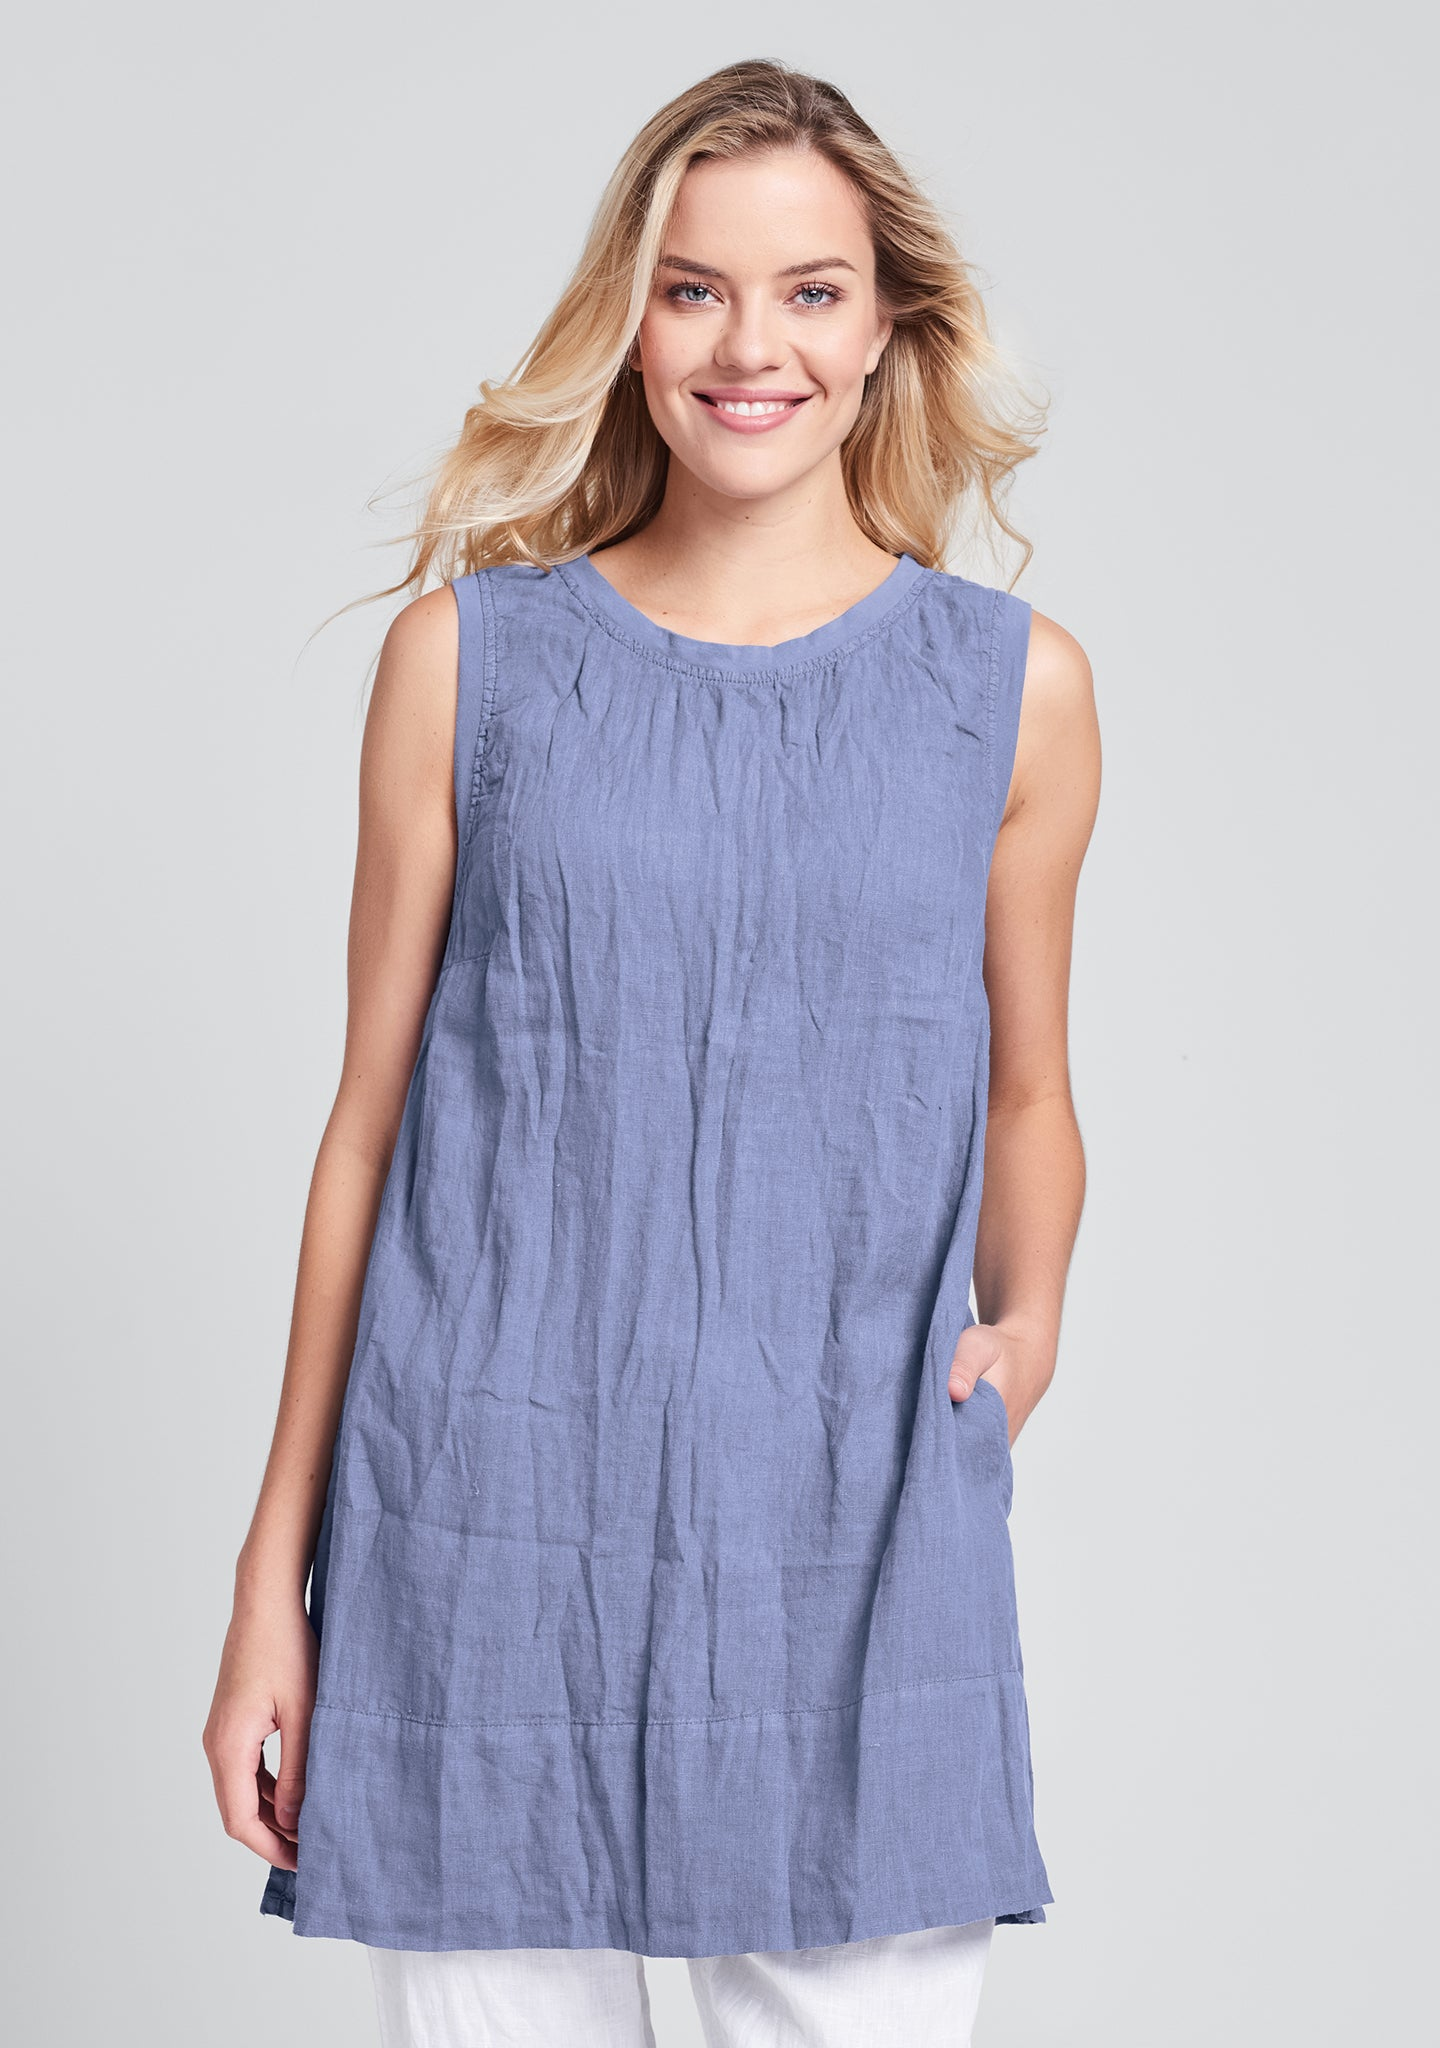 roadie tunic linen tank top blue